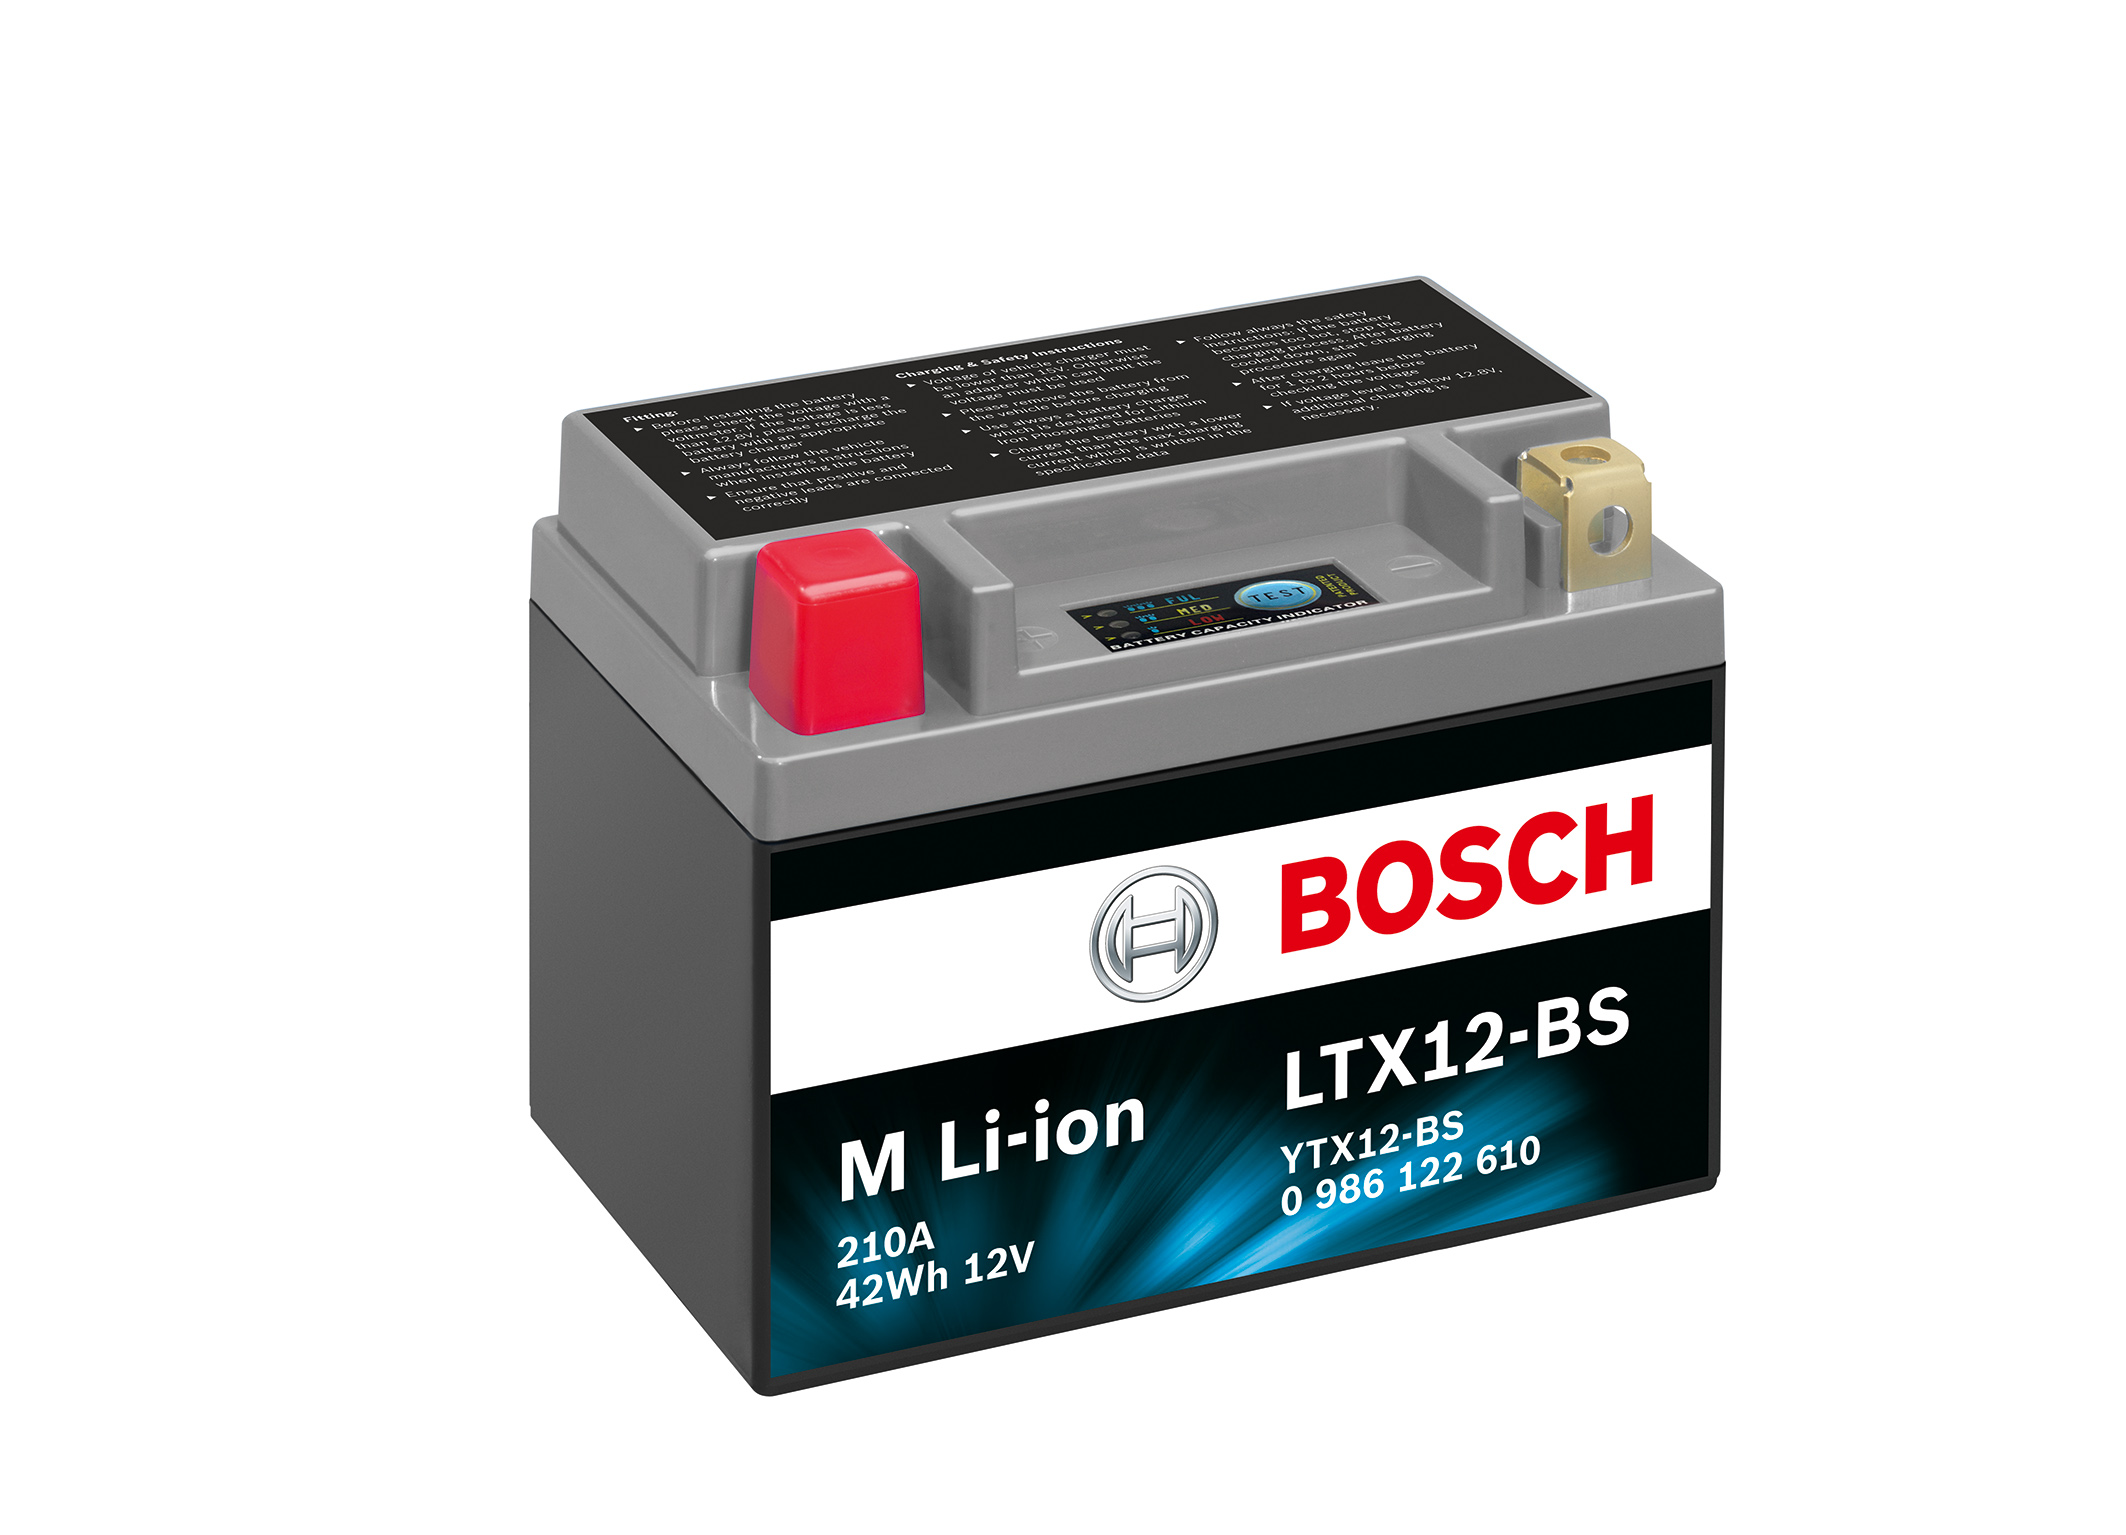 Lithium Car Battery >> New Bosch two-wheeler battery with innovative lithium-ion technology - Bosch Media Service